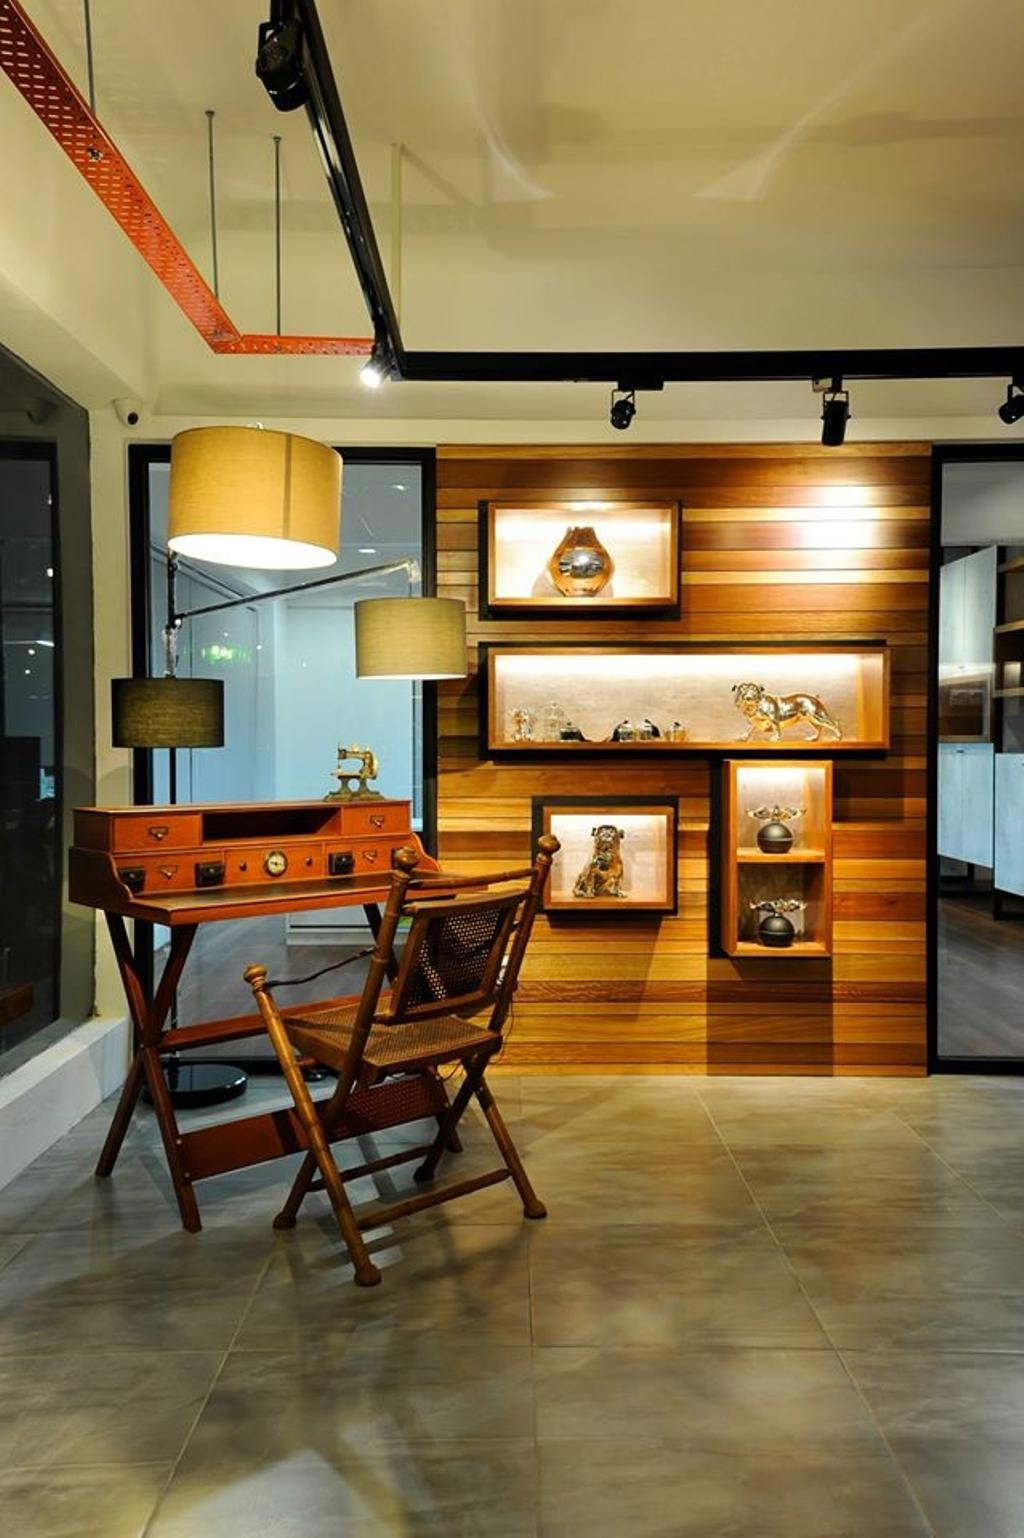 Showroom, Commercial, Interior Designer, M innovative Builders, Hardwood, Stained Wood, Wood, Lighting, Lamp, Lampshade, Furniture, Table